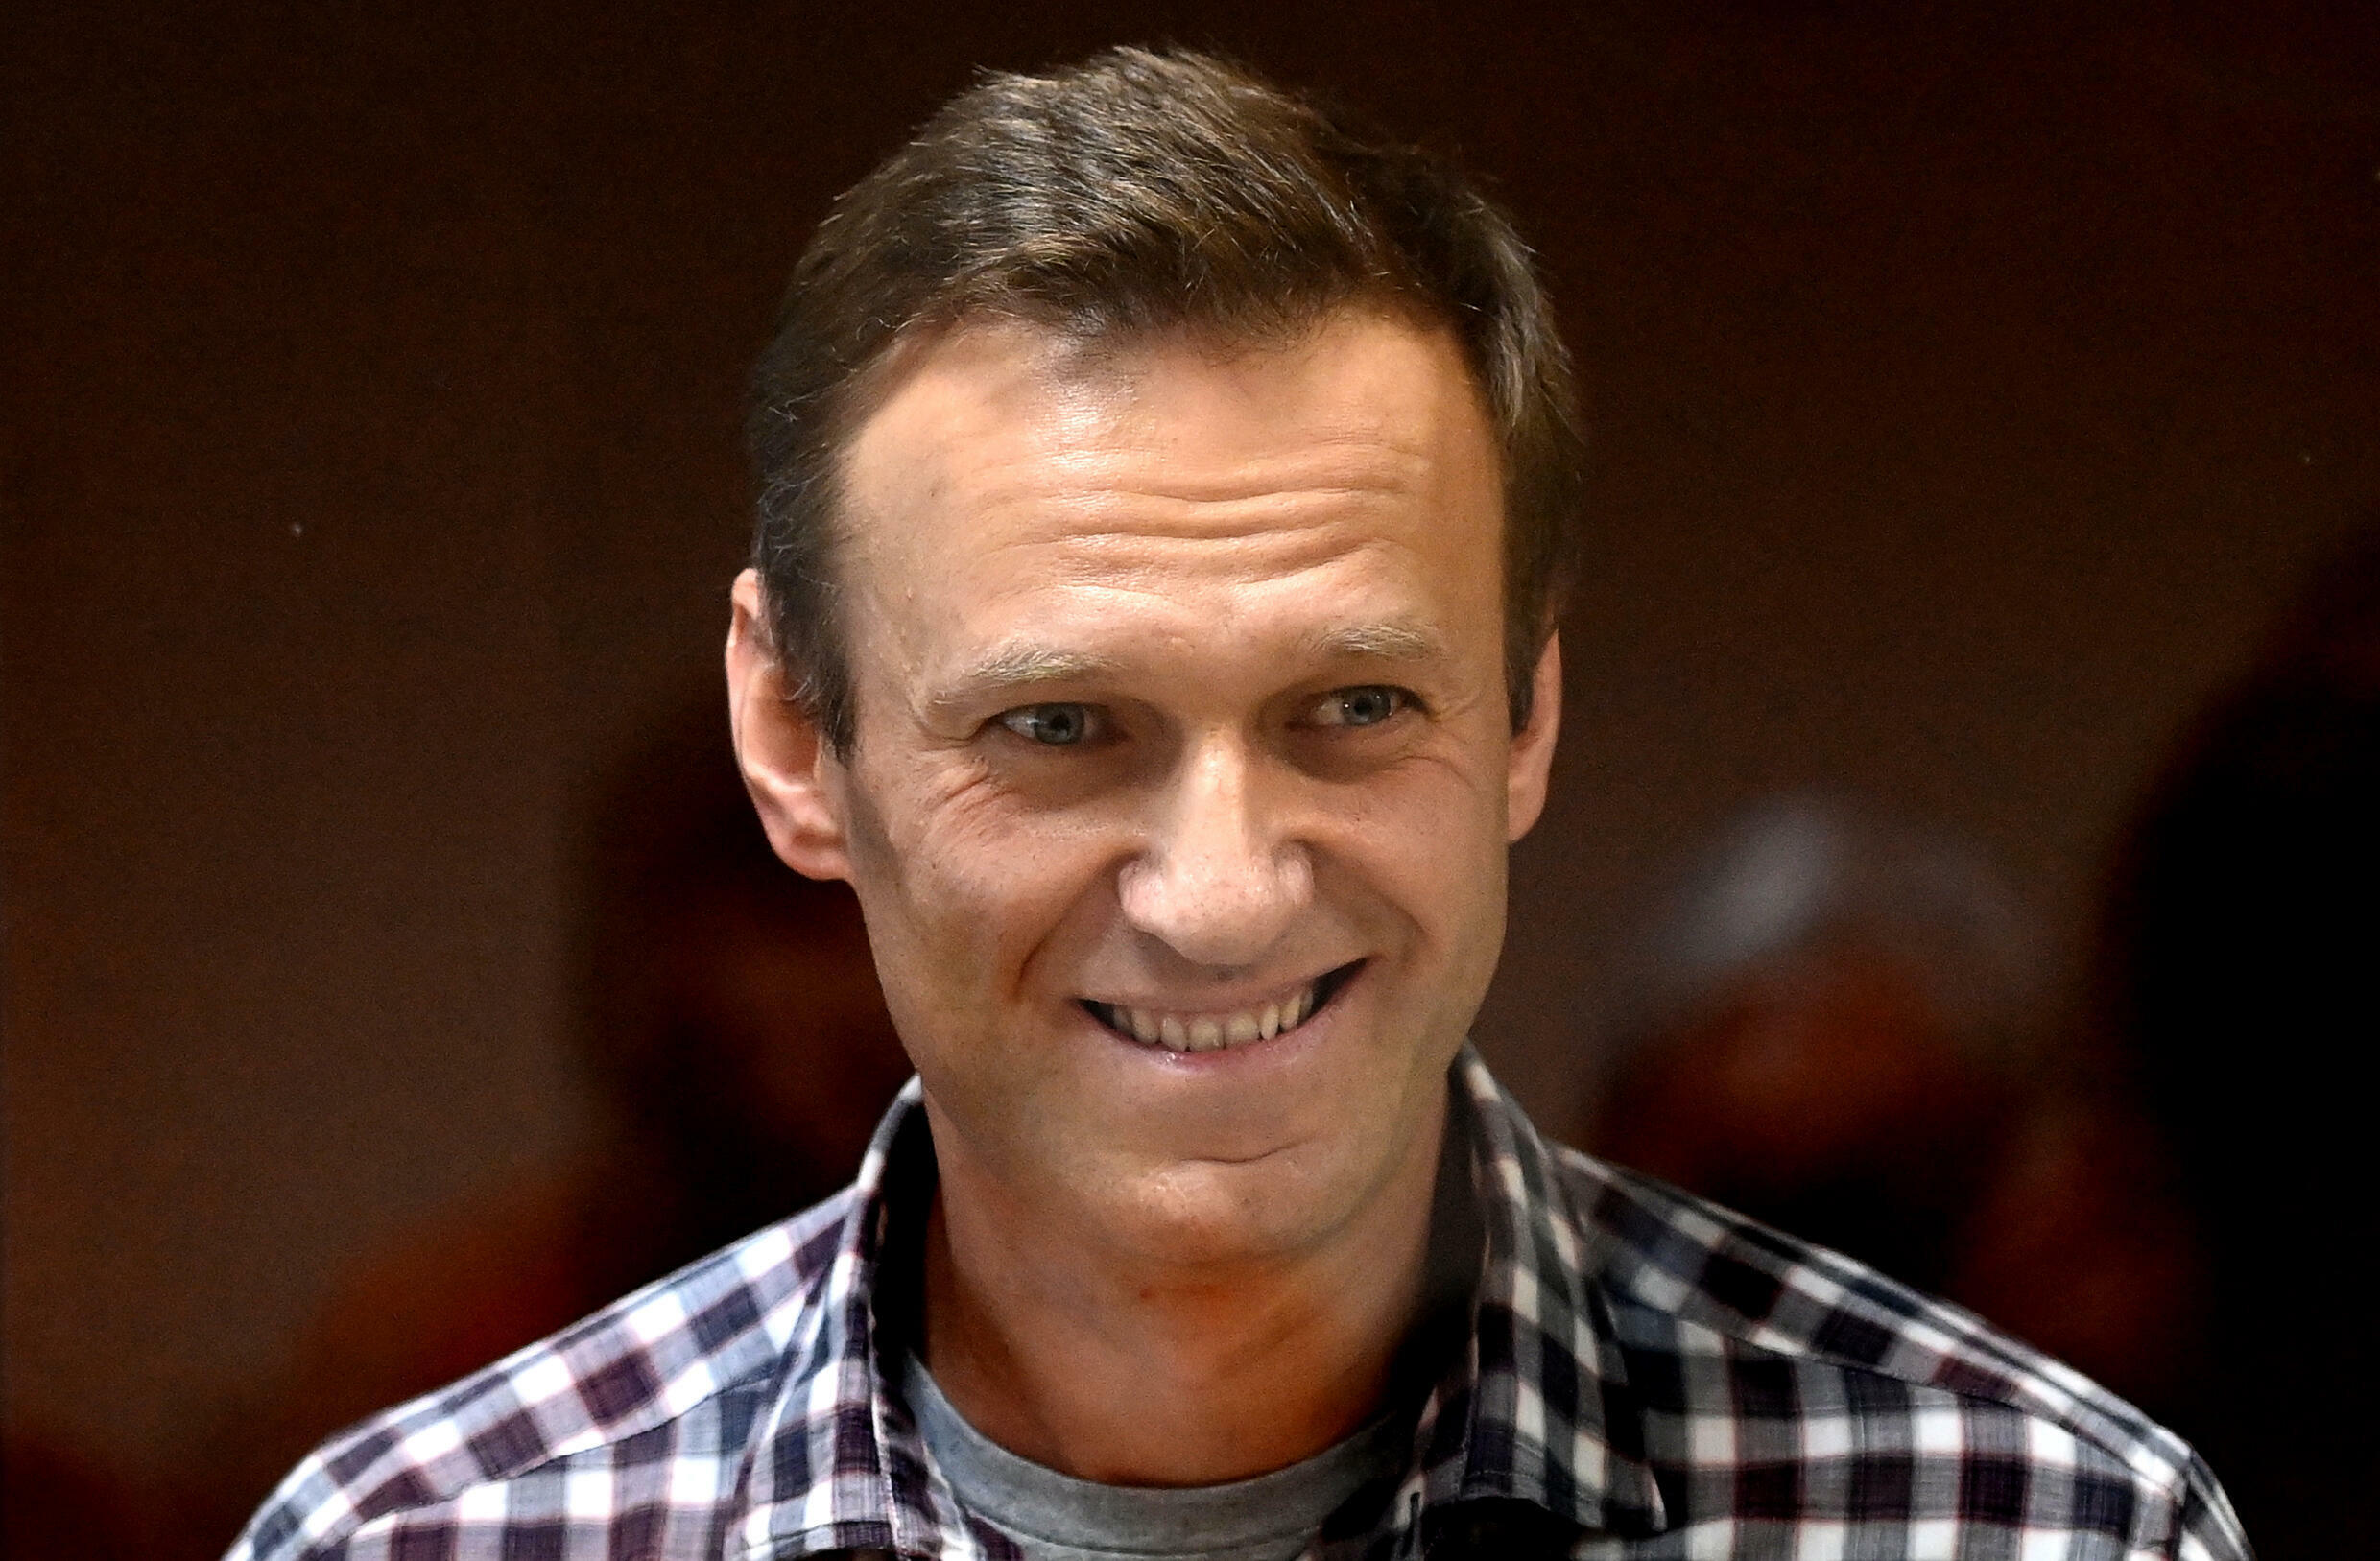 Other names mentioned this year, although to a lesser extent, include Russian opposition figure Alexei Navalny.